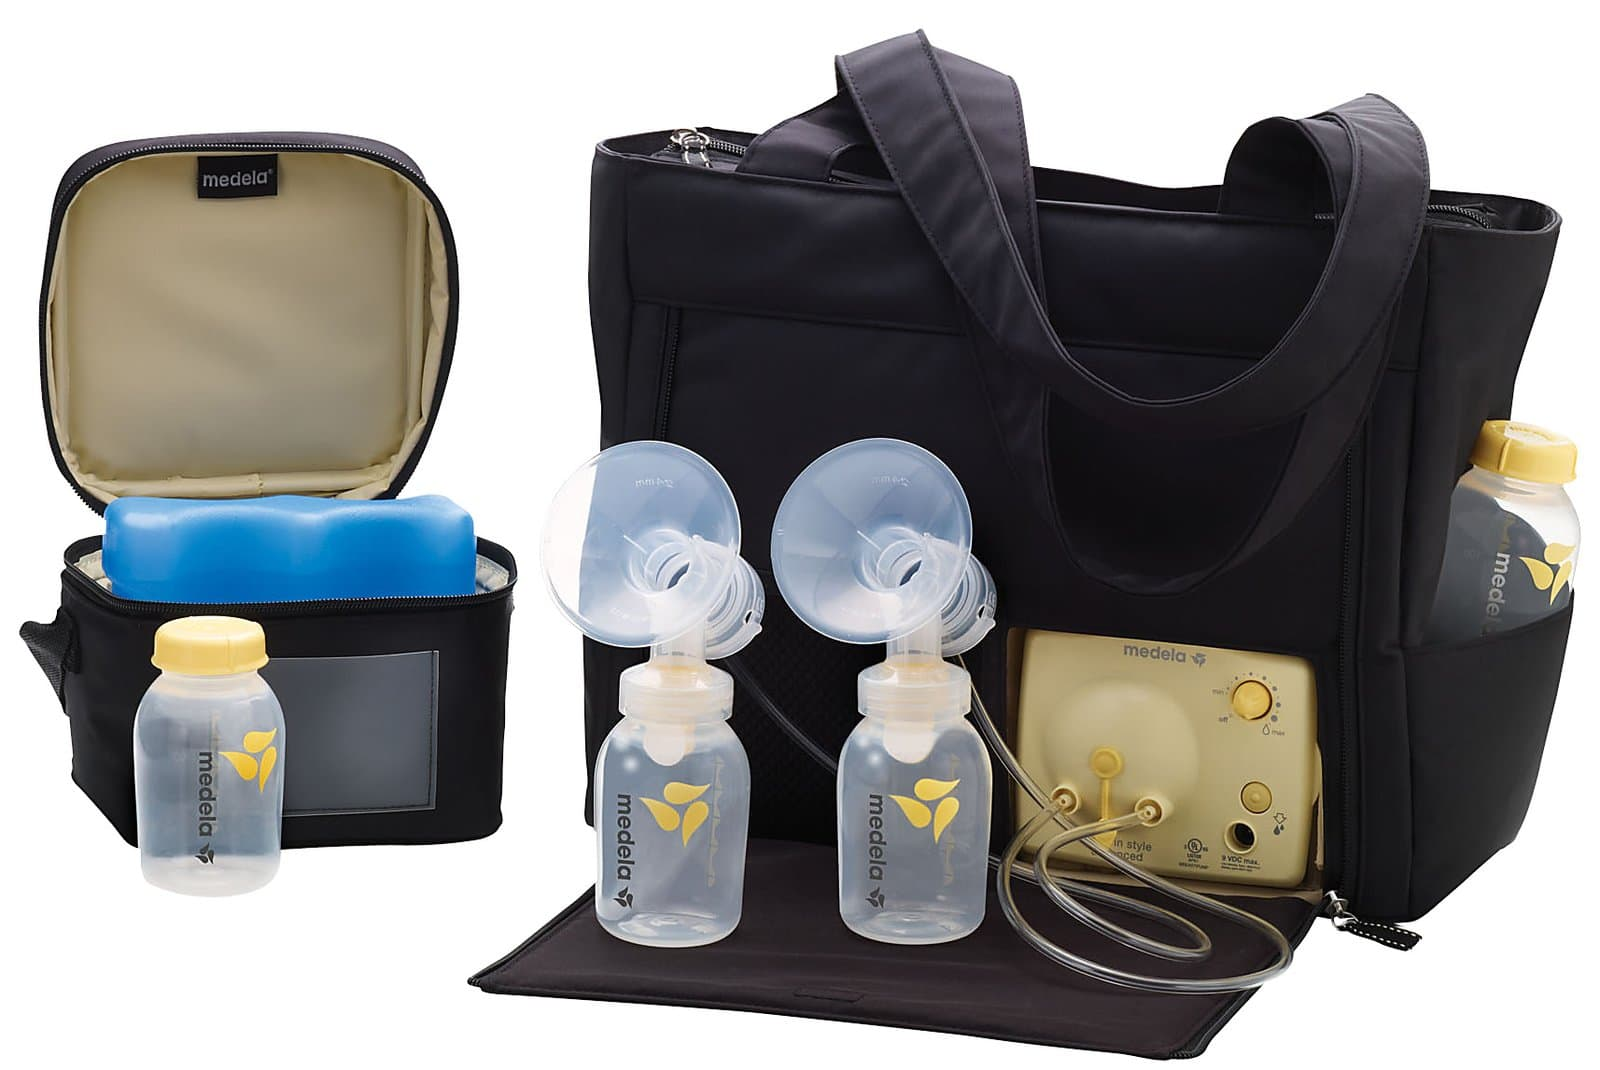 Medela Pump In Style Advanced On-The-Go Tote! Breastpump Kit $158 + Free Shipping